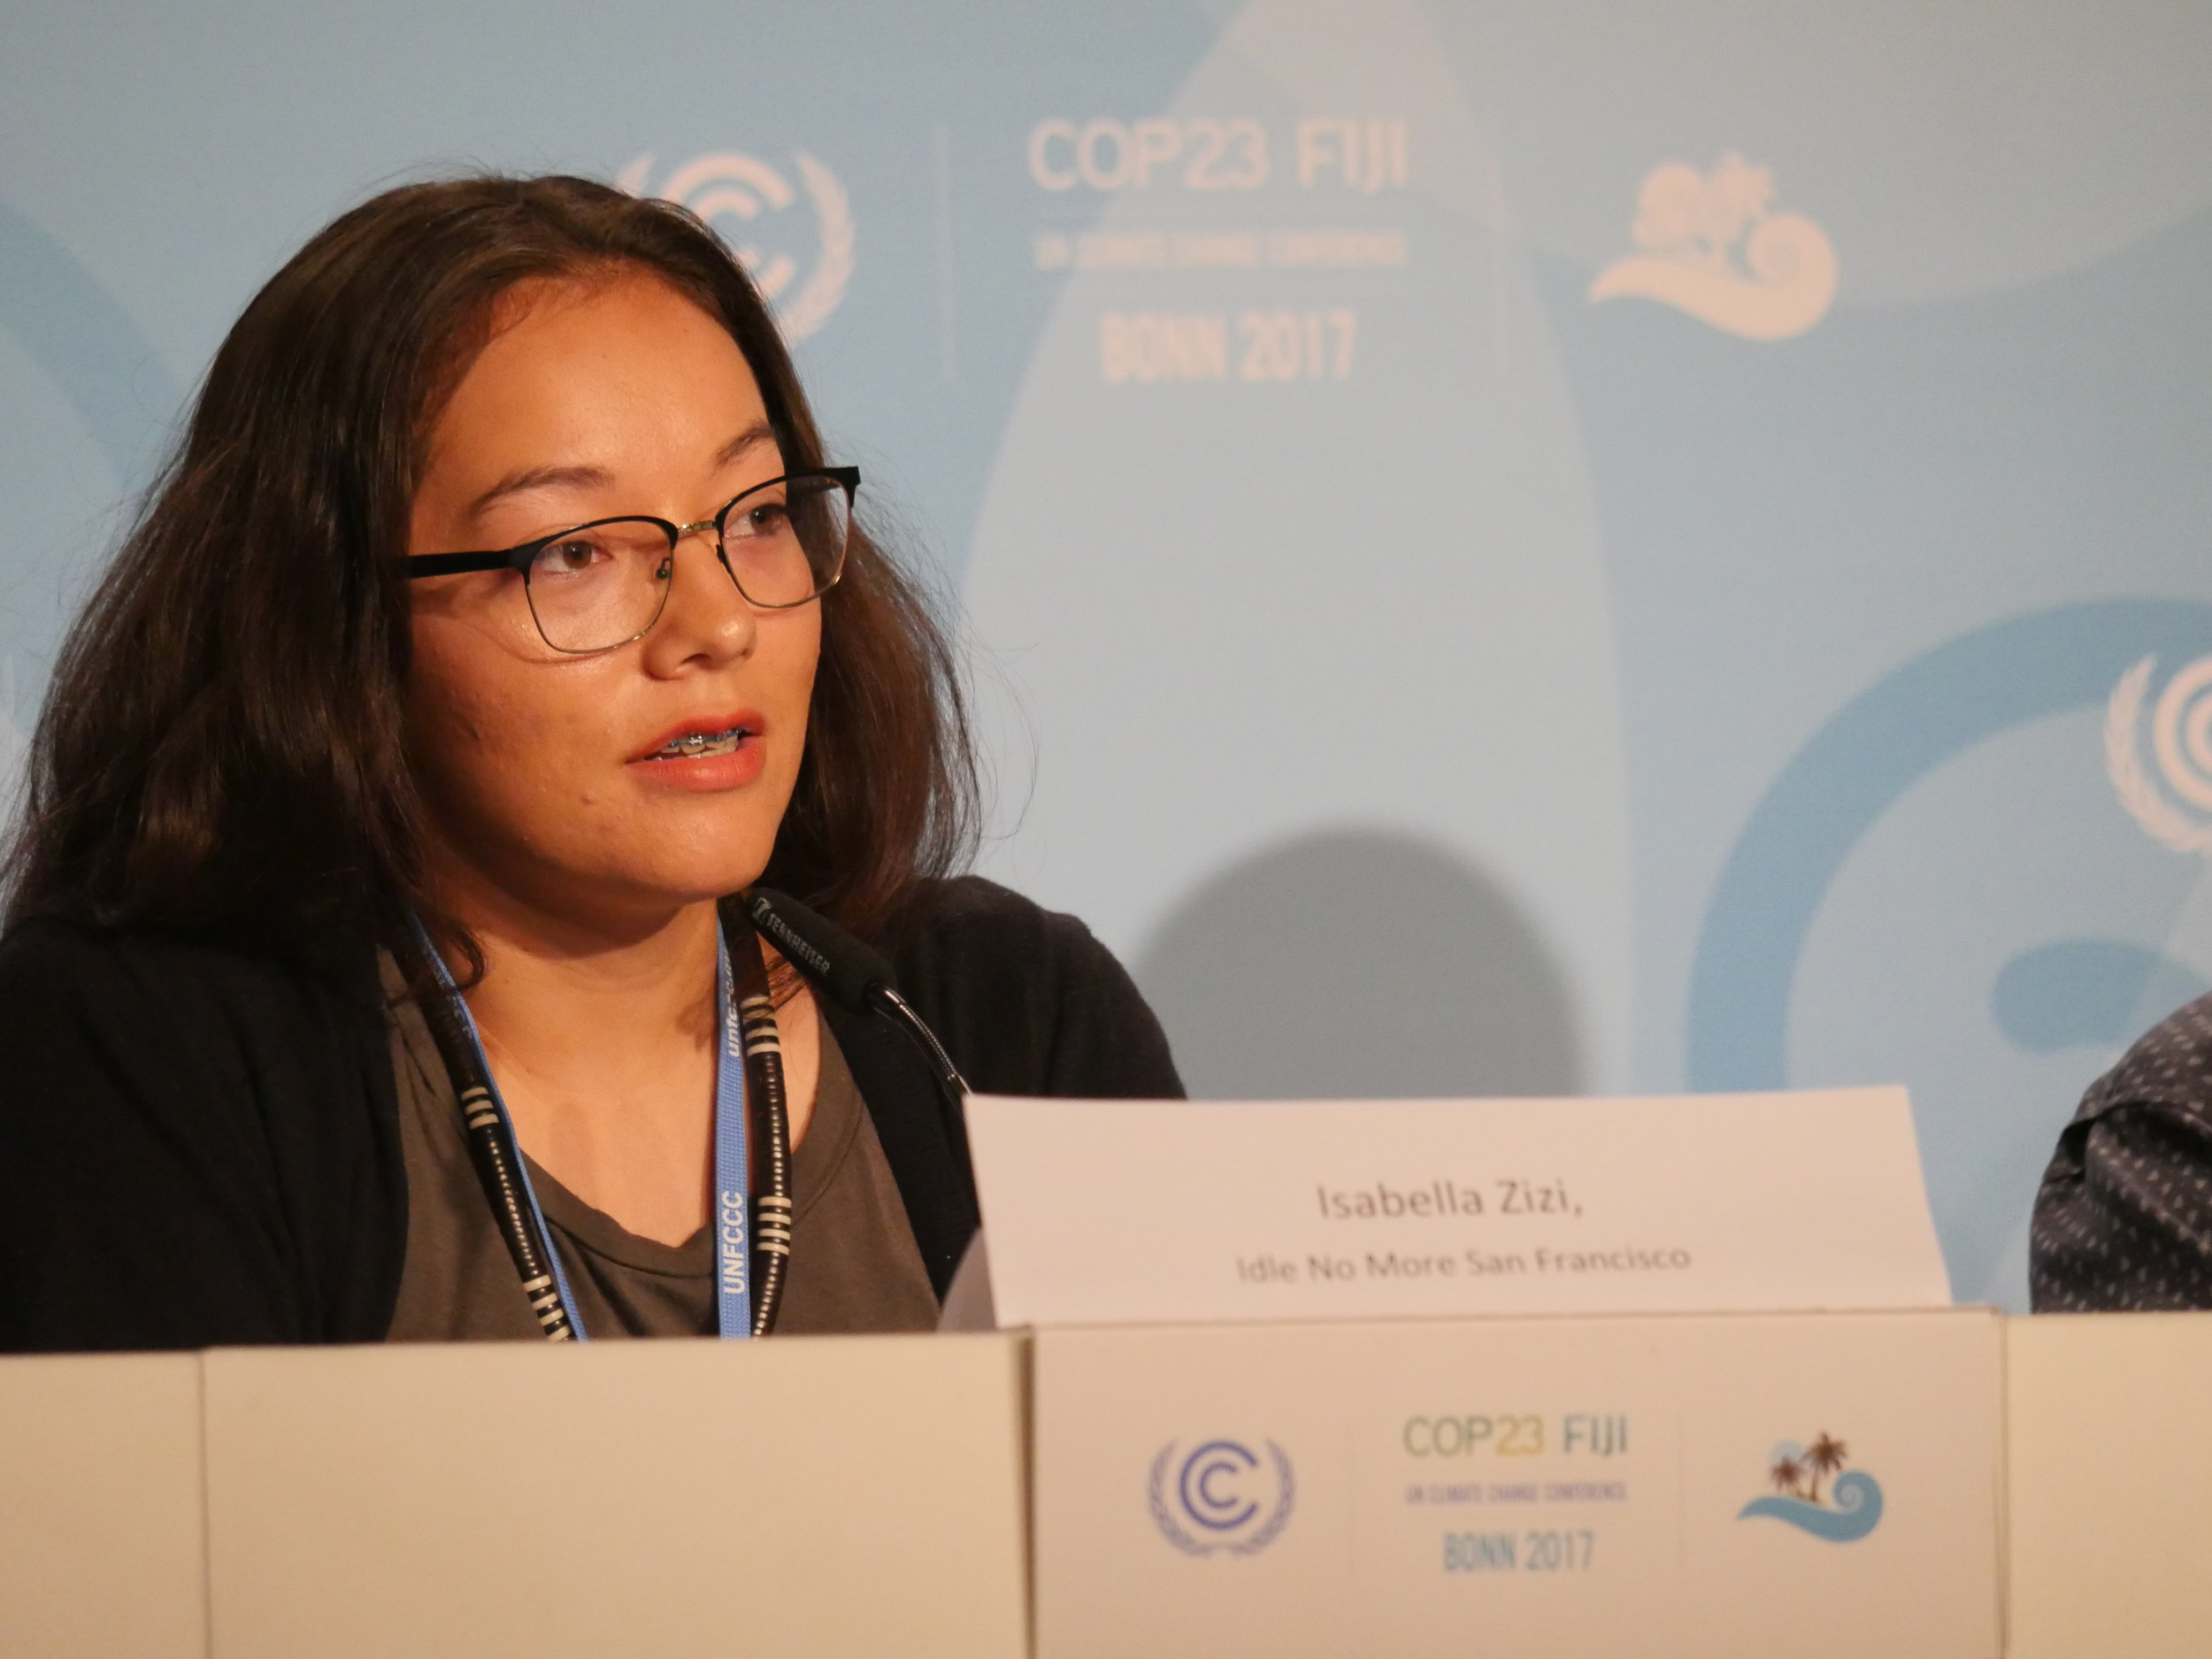 Isabella Zizi of Idle No More SF Bay Area, speaking at COP23 about false solutions such as carbon trading. Photo Courtesy: Jade Begay, Indigenous Rising Media.